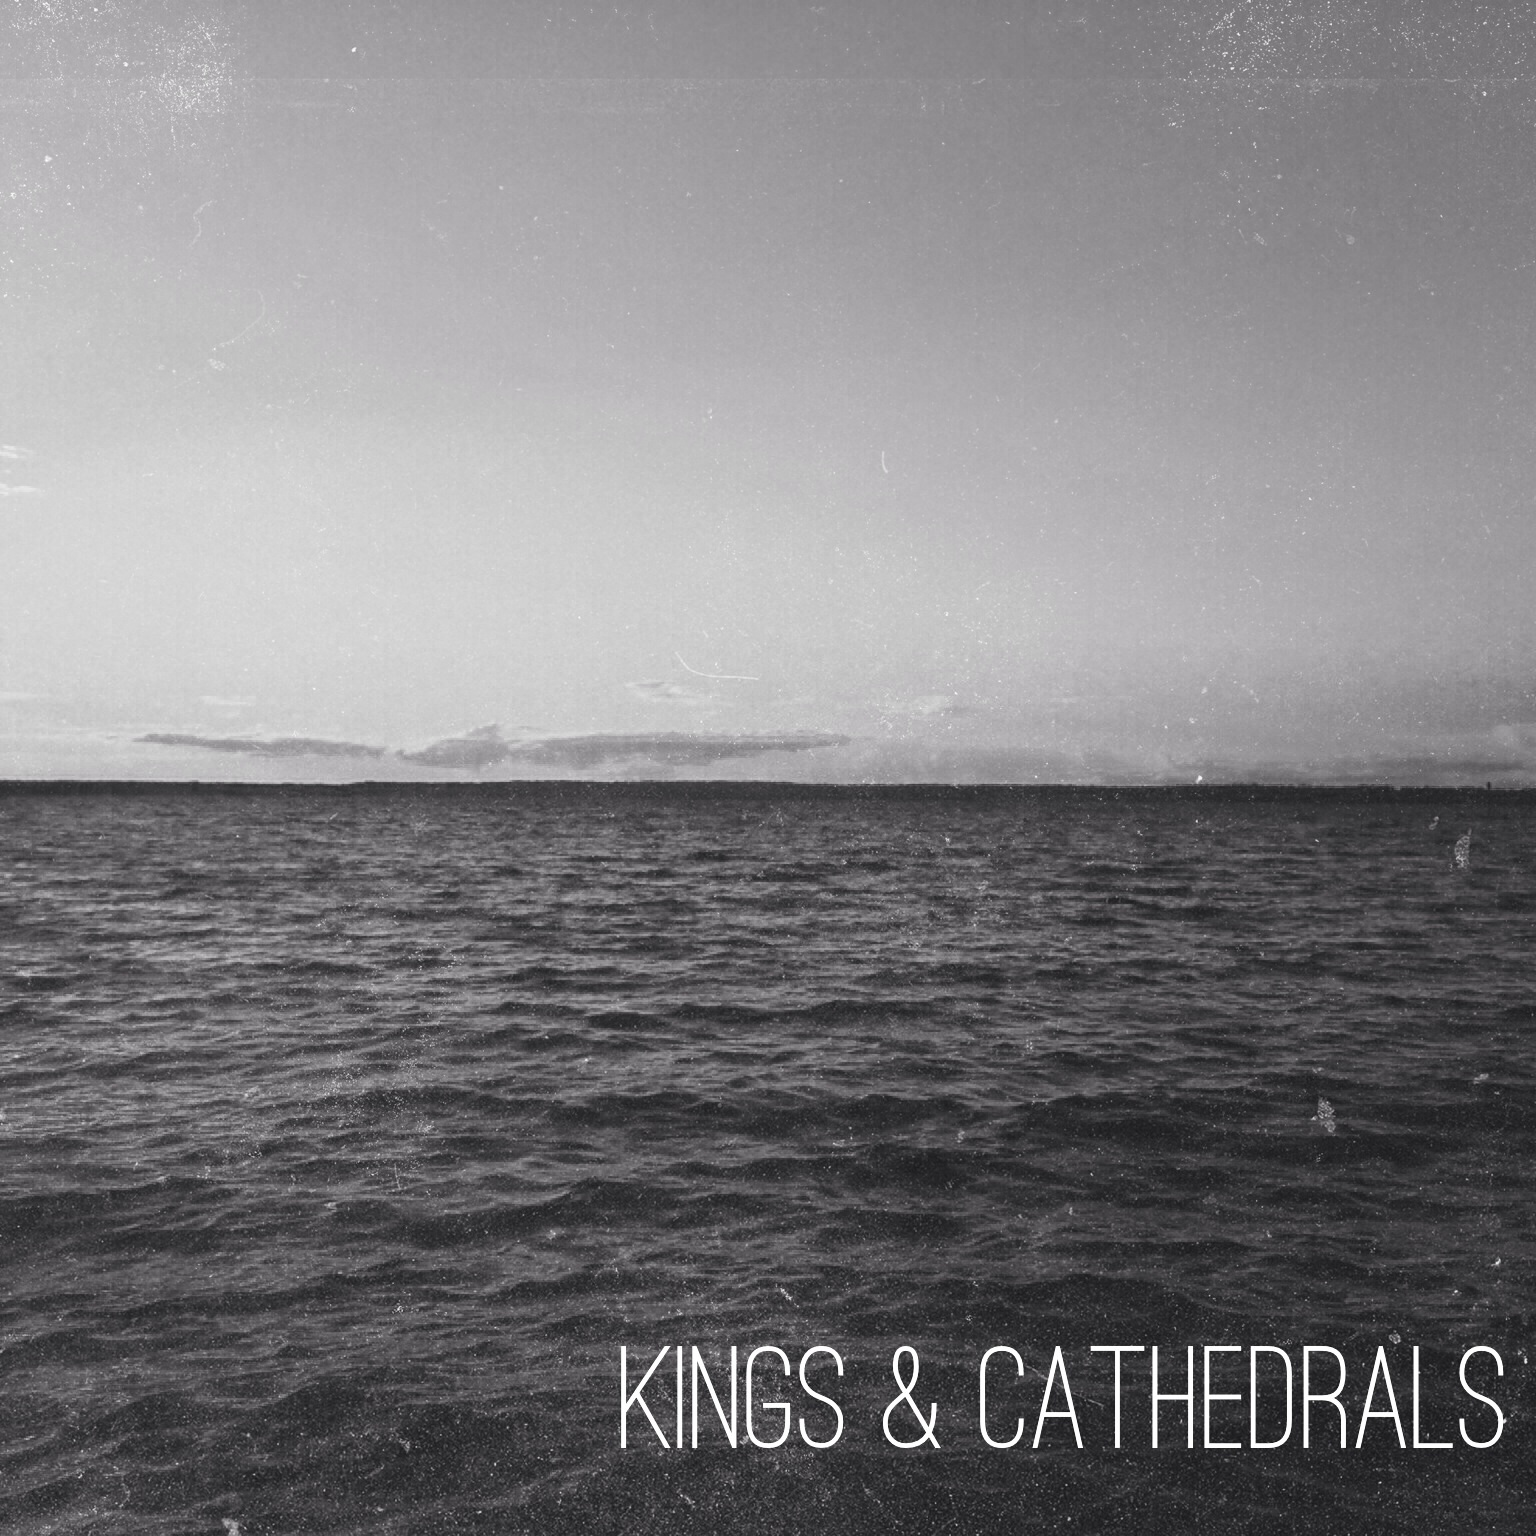 Kings & Cathedrals - default icon